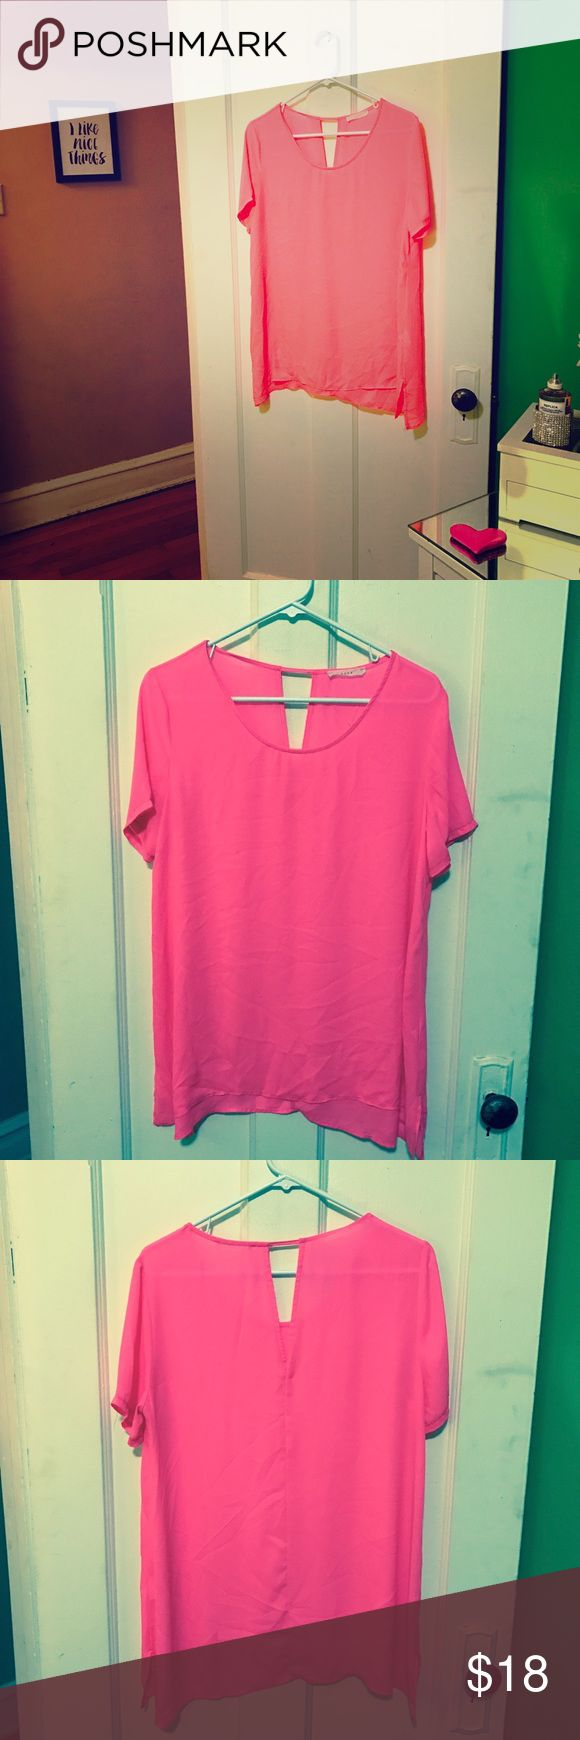 LUSH Hot Pink Blouse. Worn once. EUC LUSH Hot Pink Blouse. Worn once. EUC Lush Tops Blouses